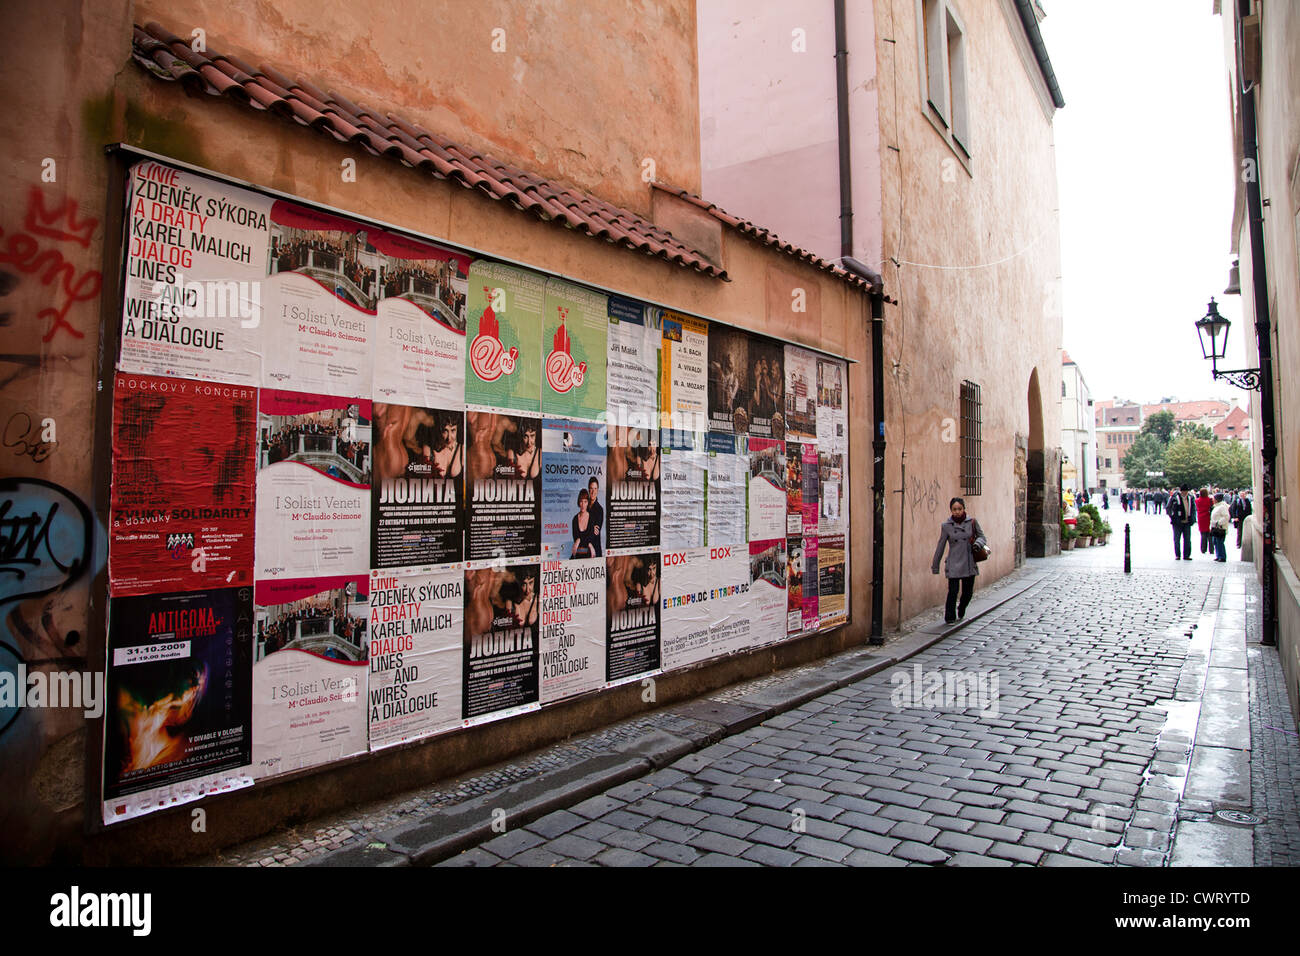 Prague, Czech Republic: Typical street scene, complete with billboard and graffiti, near Old Town Square. - Stock Image